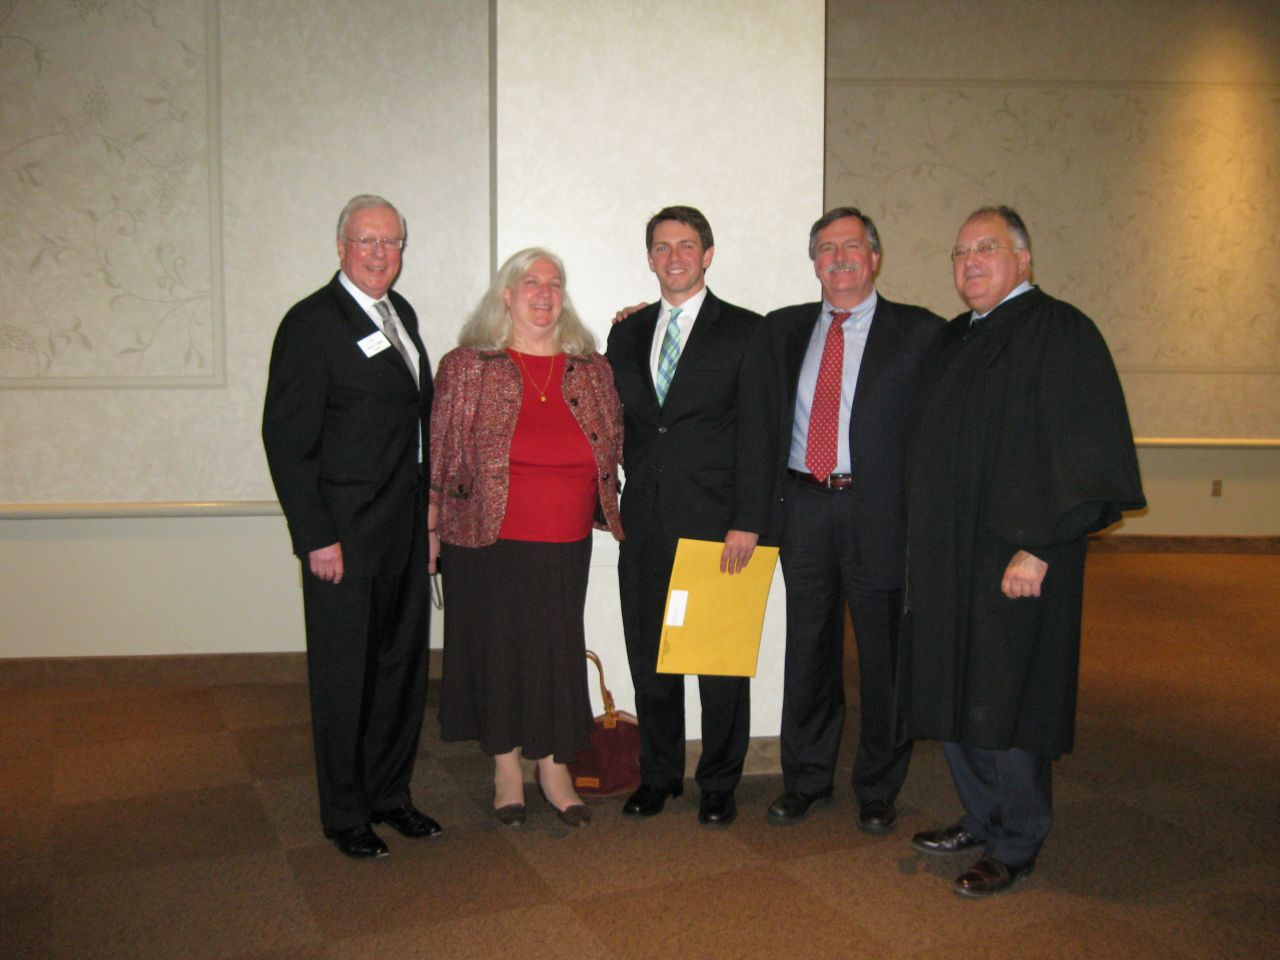 ISBA President John O'Brien, Deb Baron, her son, new admittee David Baron, his father, ISBA member Dennis Baron and Justice Robert L. Carter